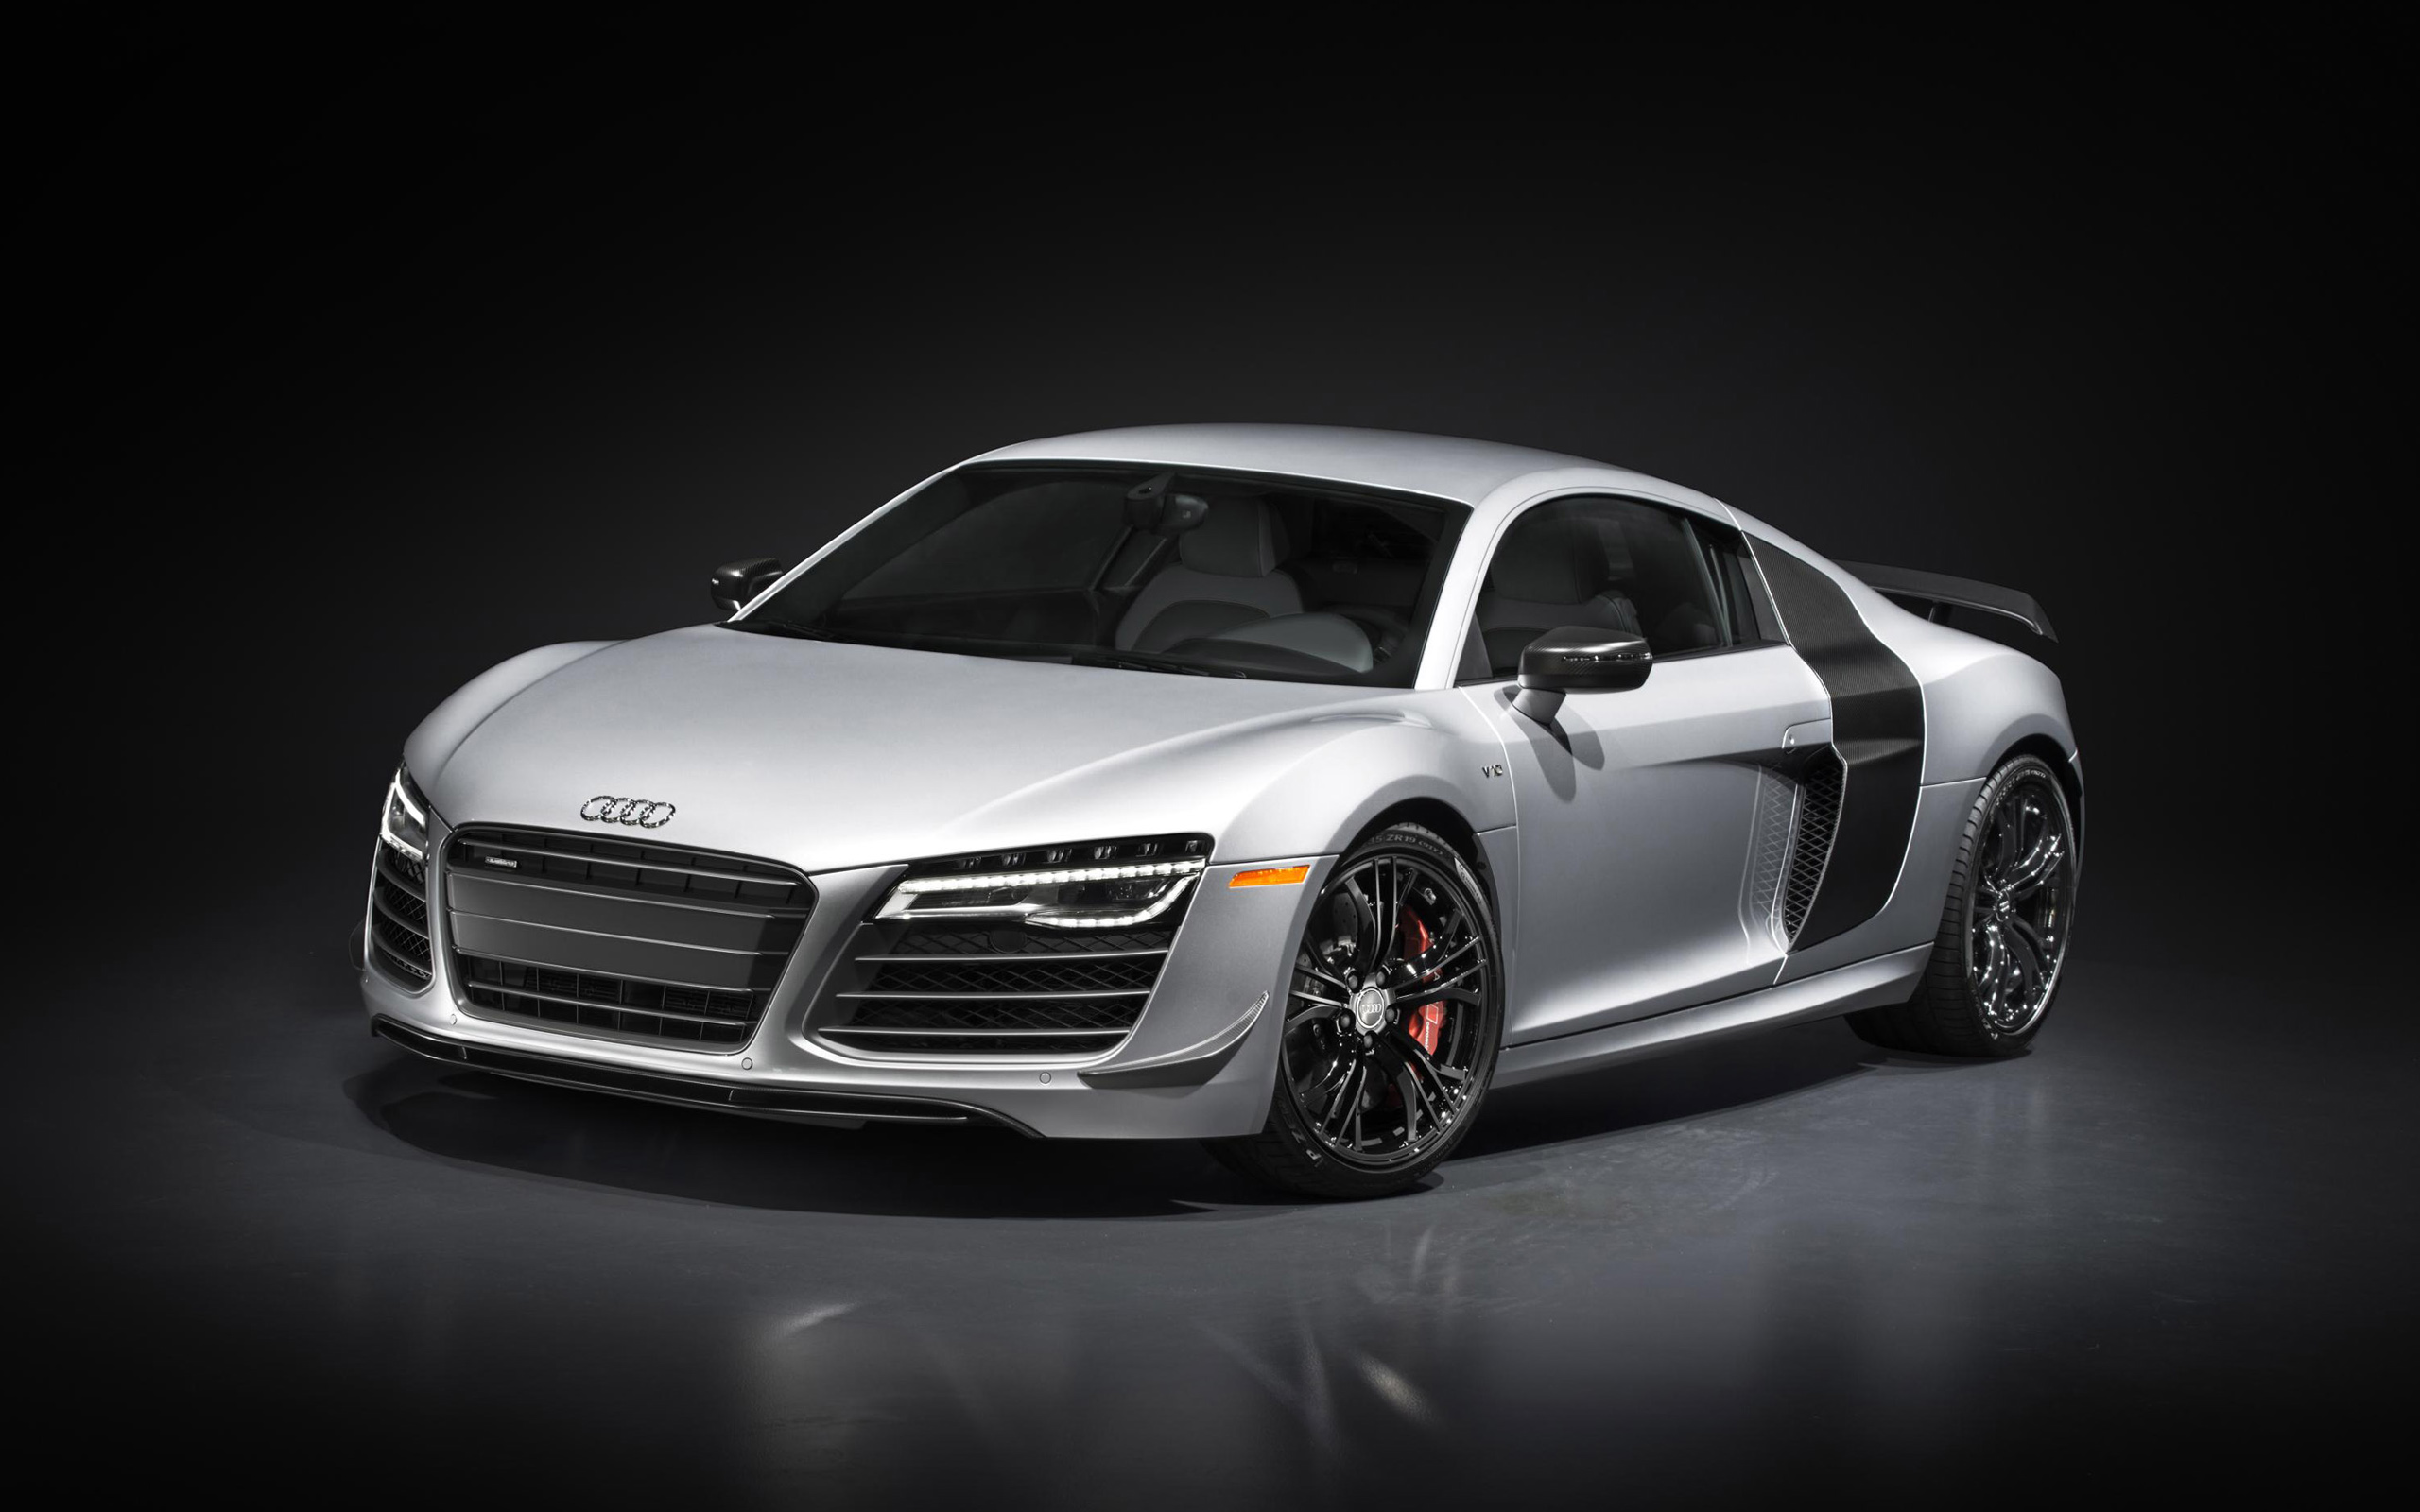 Audi R8 Competition 2015 Wallpapers HD Wallpapers 2560x1600